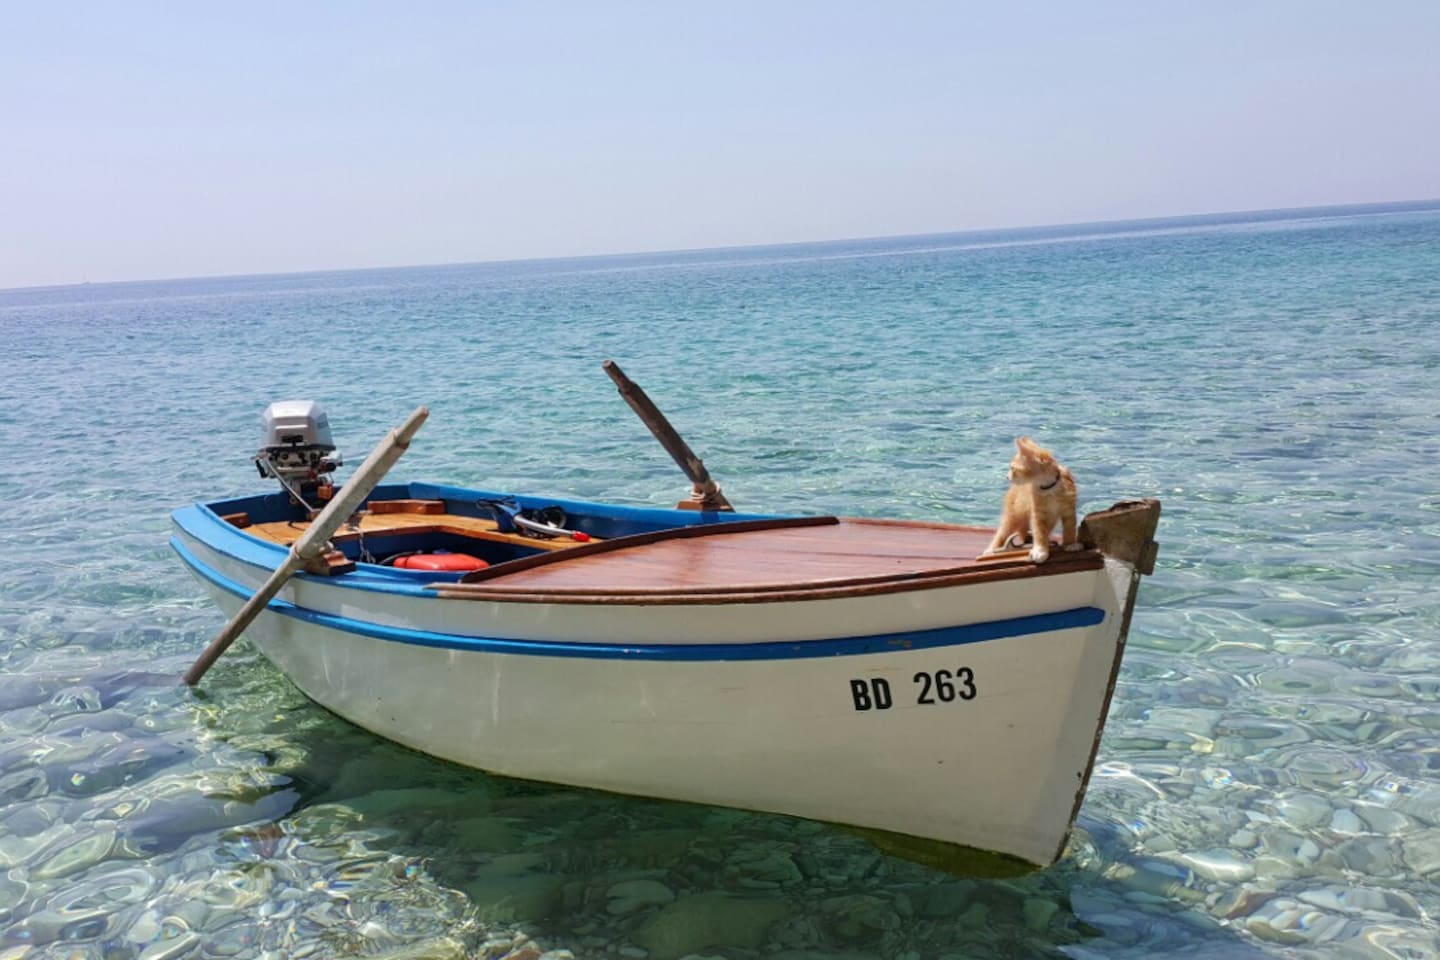 Tošo the cat leading the way to the Fisherman's Home!